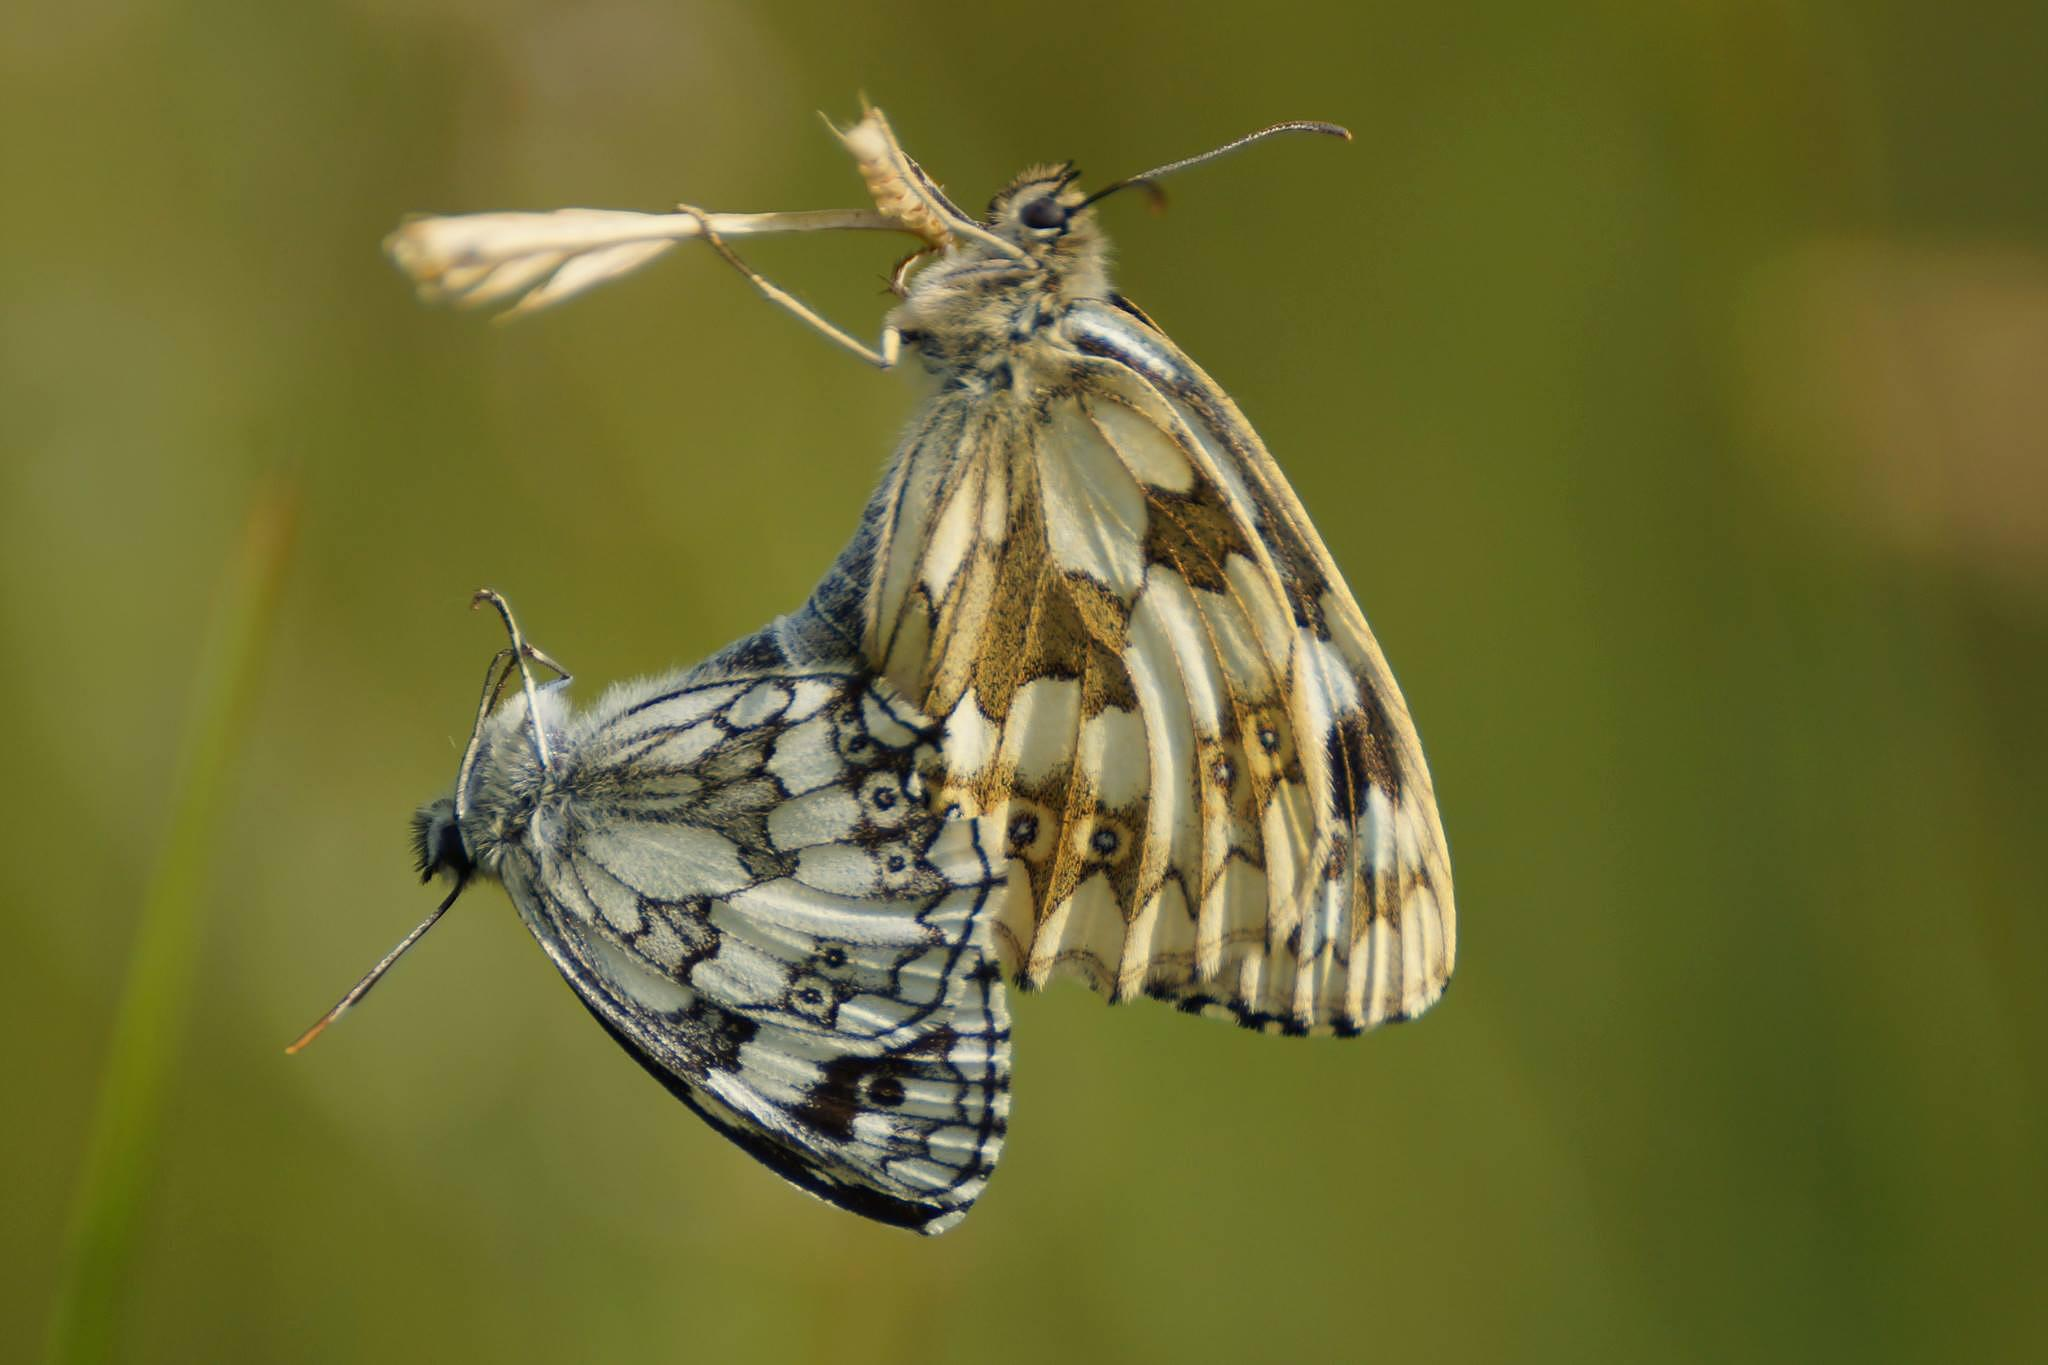 Mating Marbled White butterflies by Mark Askew